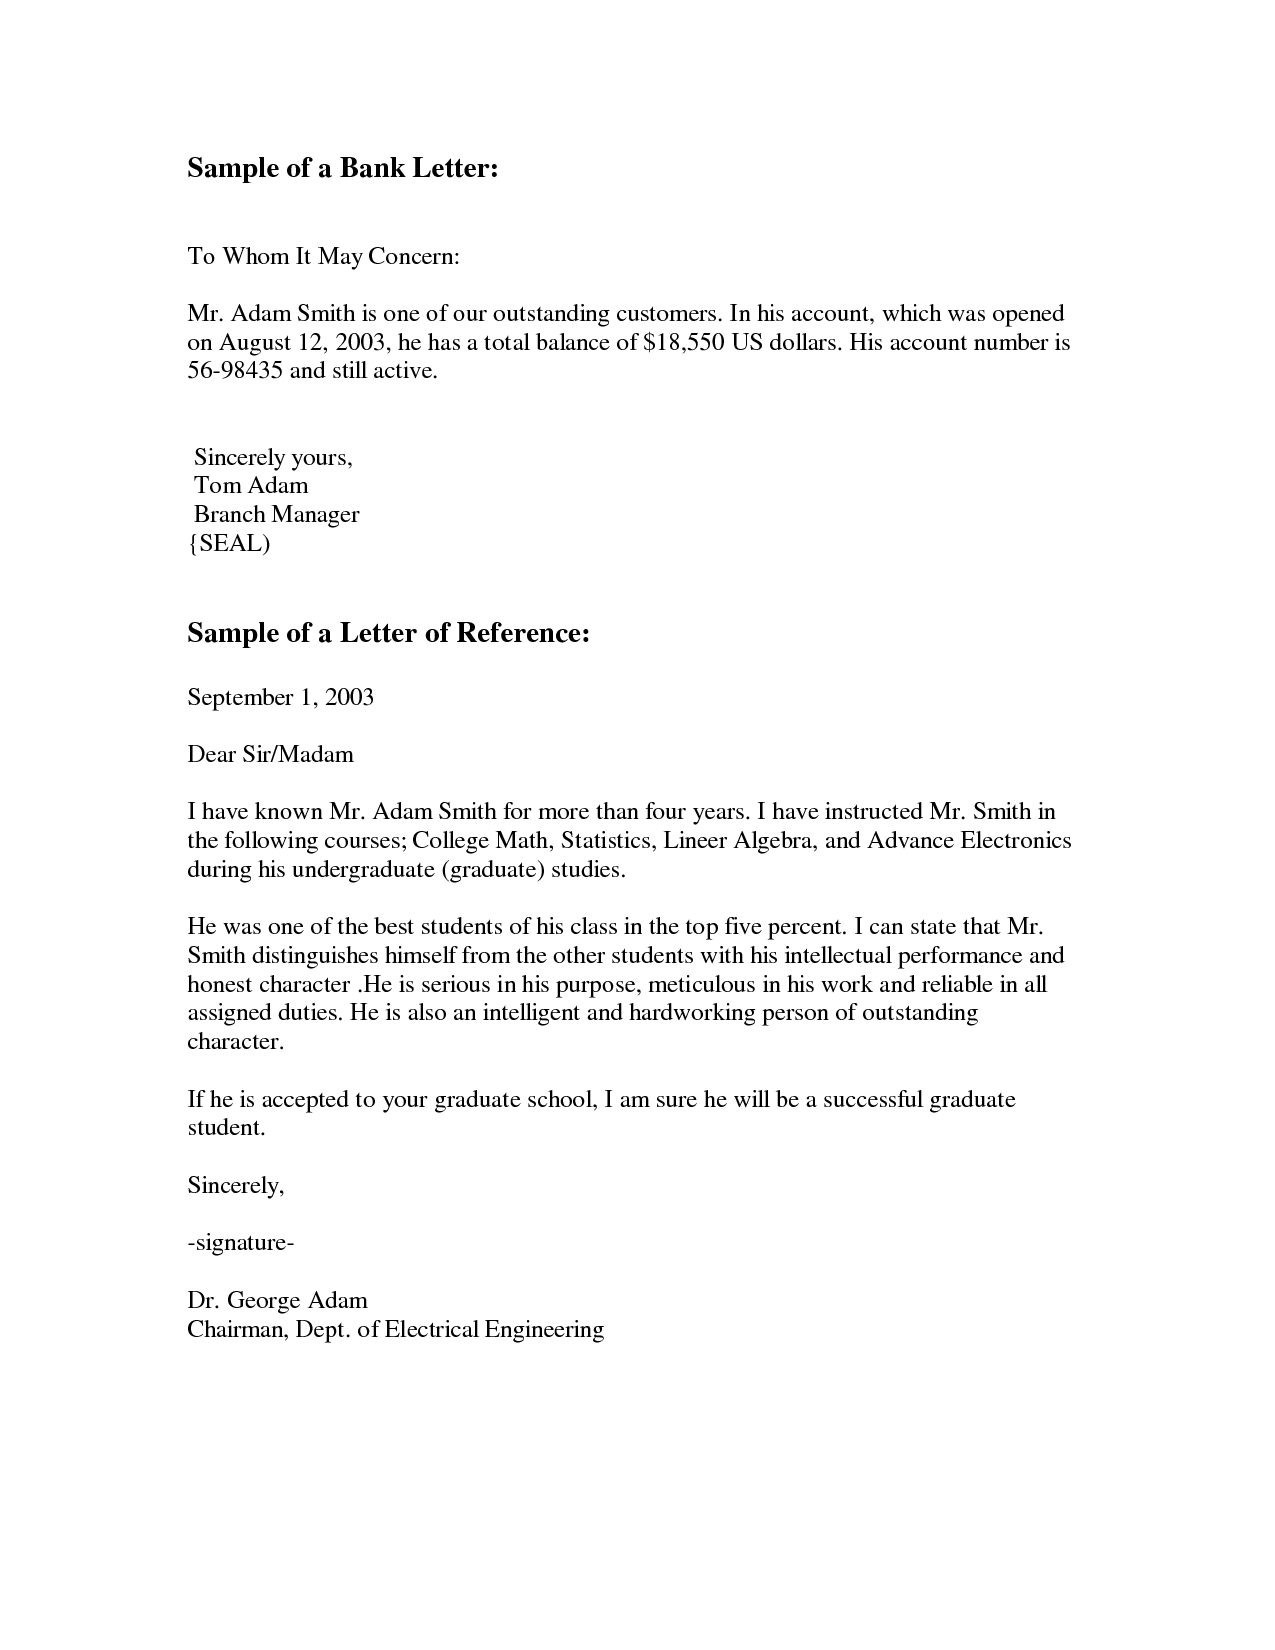 Free Letter Re mendation Template Samples